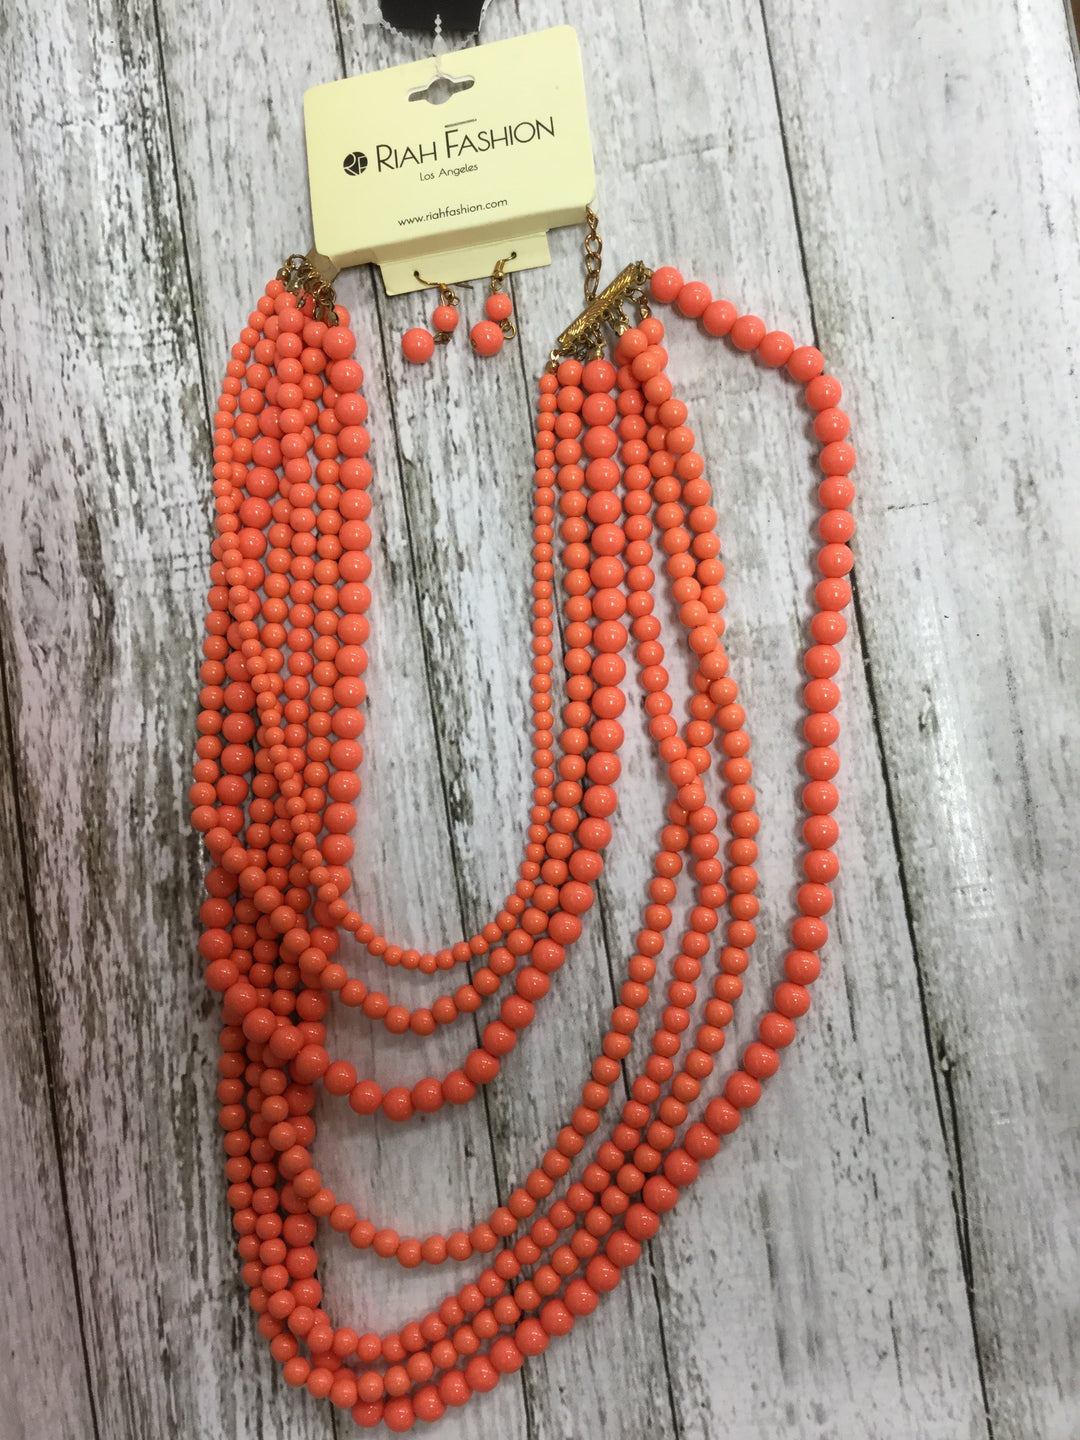 Primary Photo - BRAND:   CMC , STYLE: NECKLACE SET , COLOR: CORAL , SIZE: 02 PIECE SET , OTHER INFO: RIAH FASHION - , SKU: 127-4954-5834, , 2 PIECE SET OF CORAL BEAD NECKLACE AND EARRINGS!